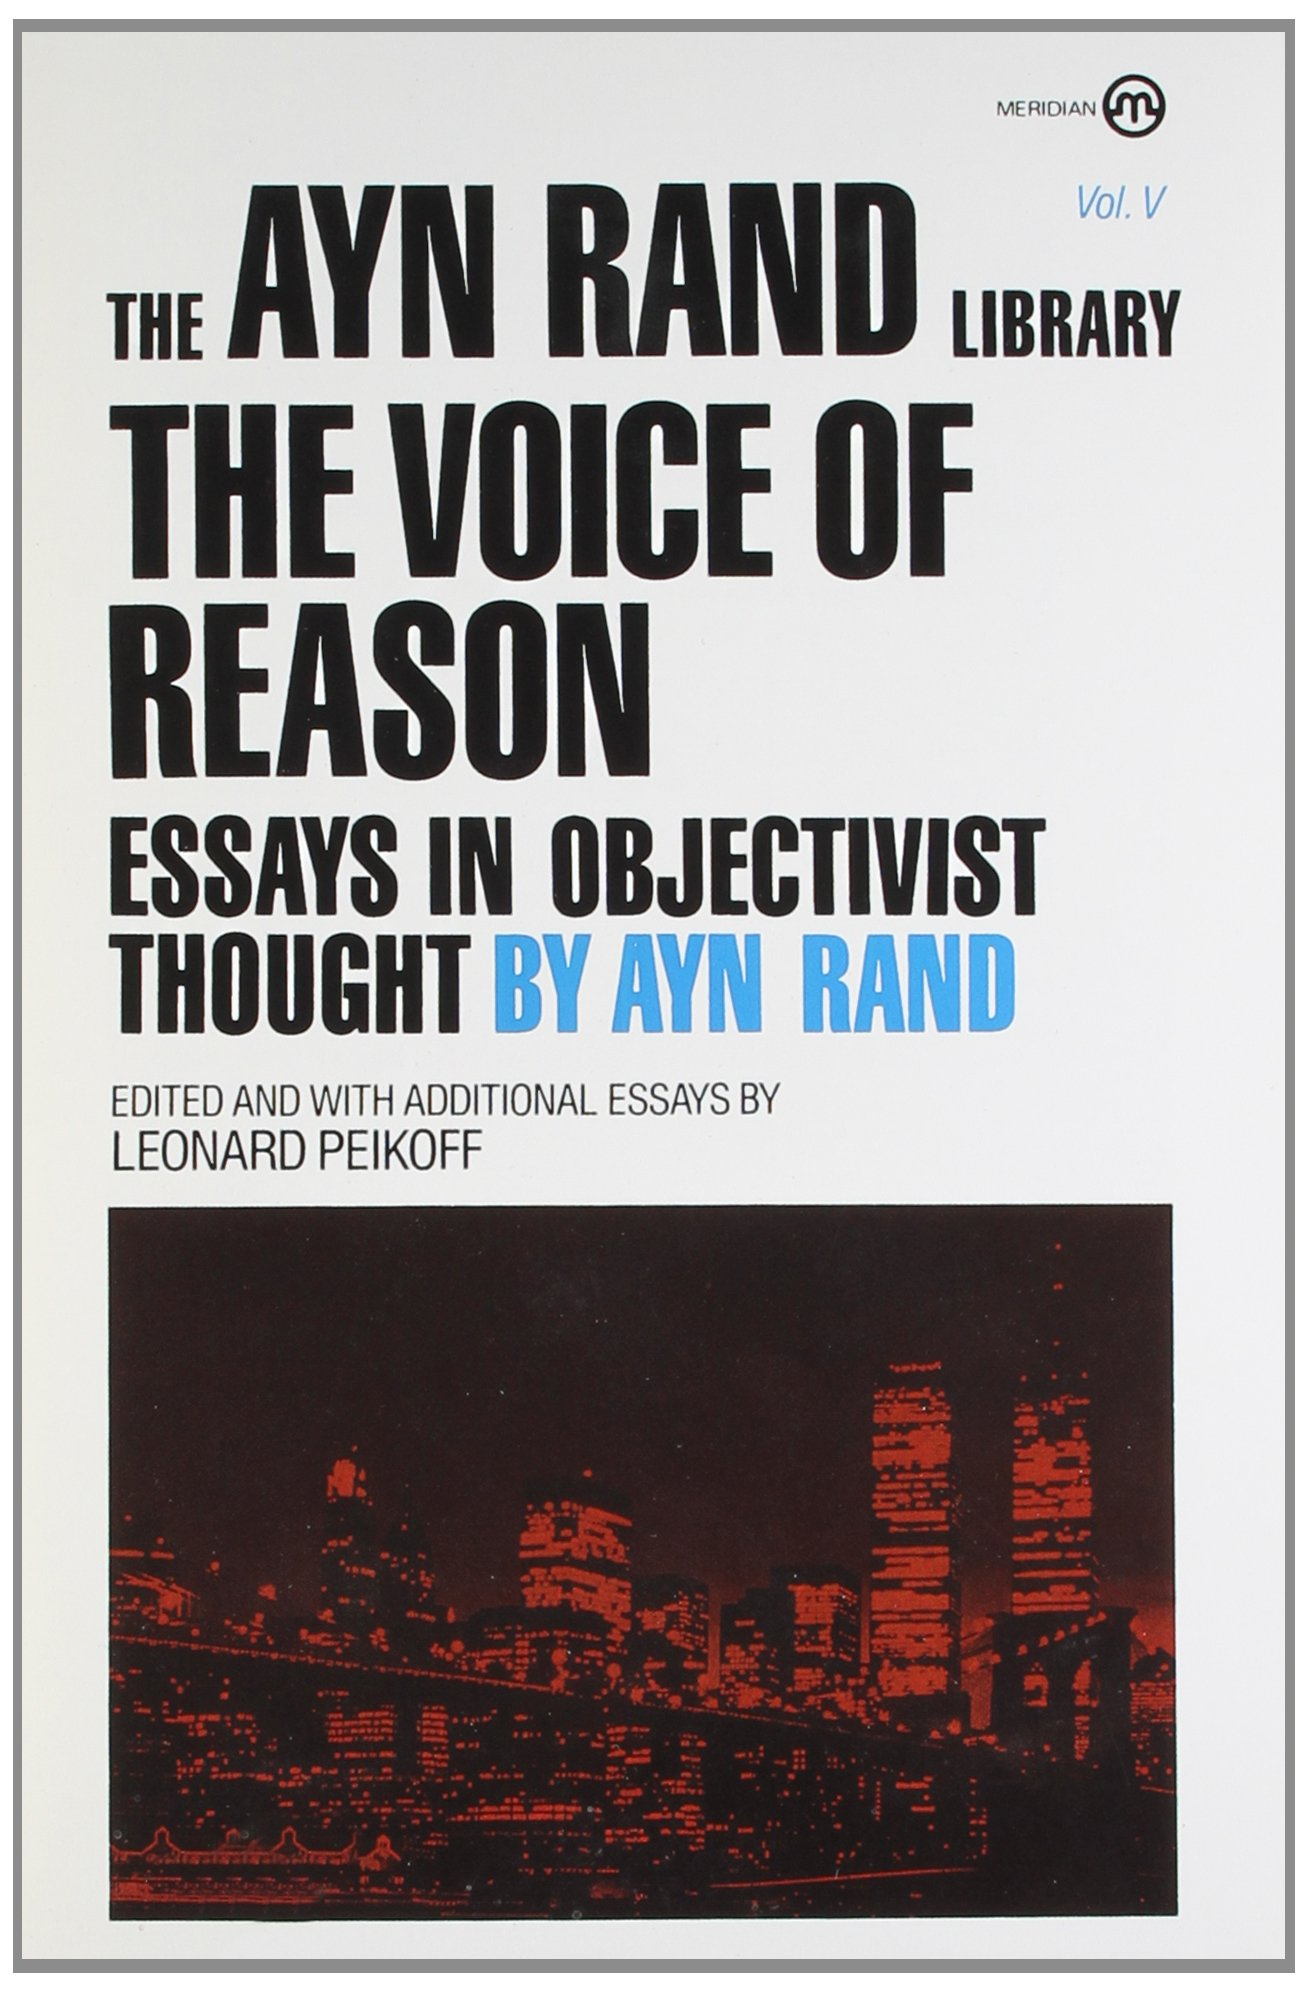 ayn rand essay contest canada Ayn rand institute essay contests enter an ayn rand institute essay contest for to schools in the united states and canada i would like to have rand.